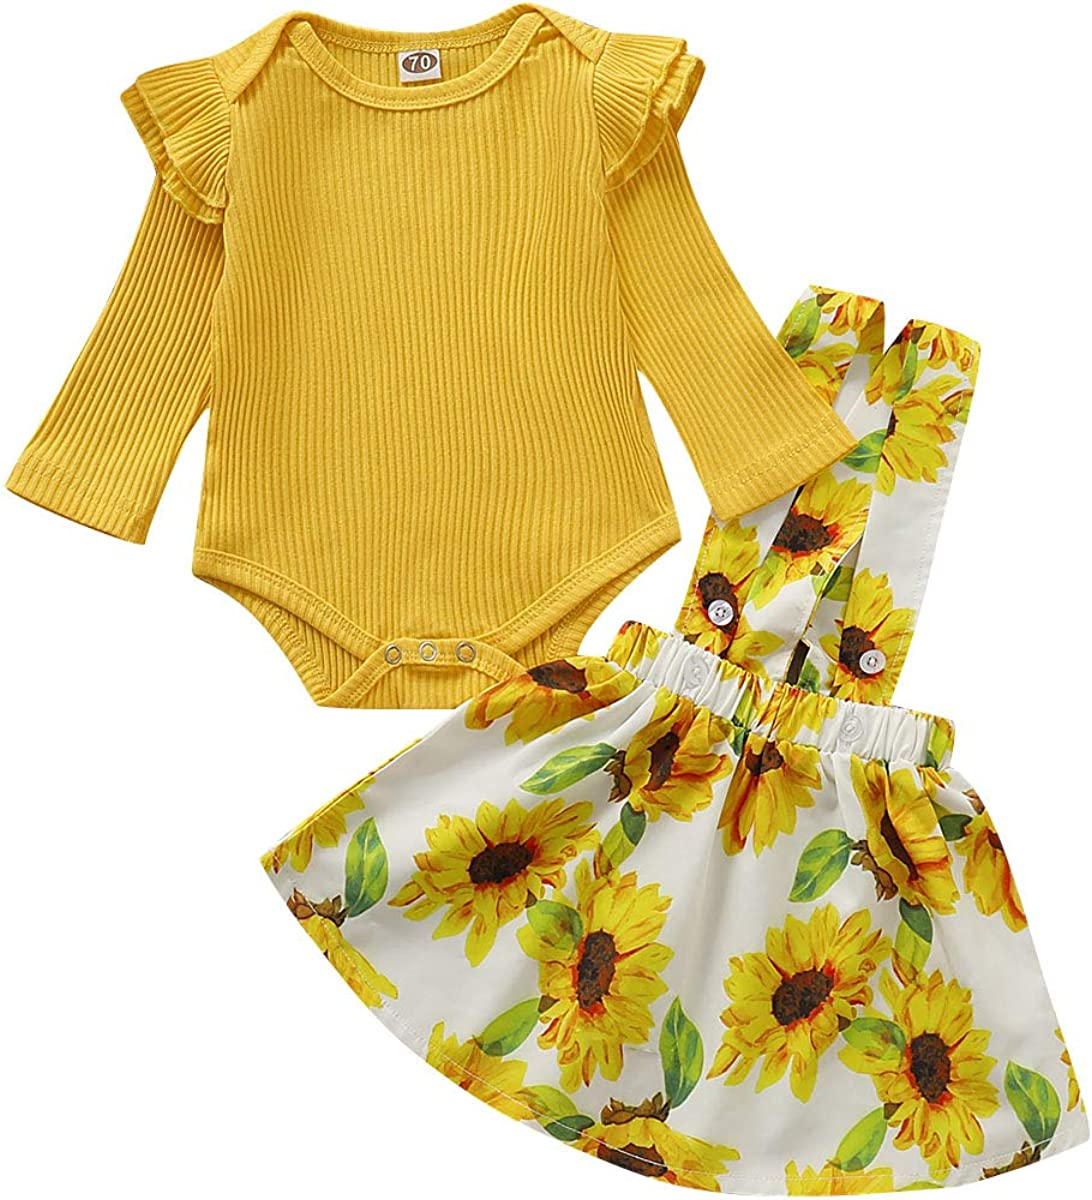 18-24M//SIZE100 2Pcs Baby Girls Dresses Floral Sunflower Long Sleeve T-Shirt Tops with A-line Skirt for Girls Kids Outfits Set